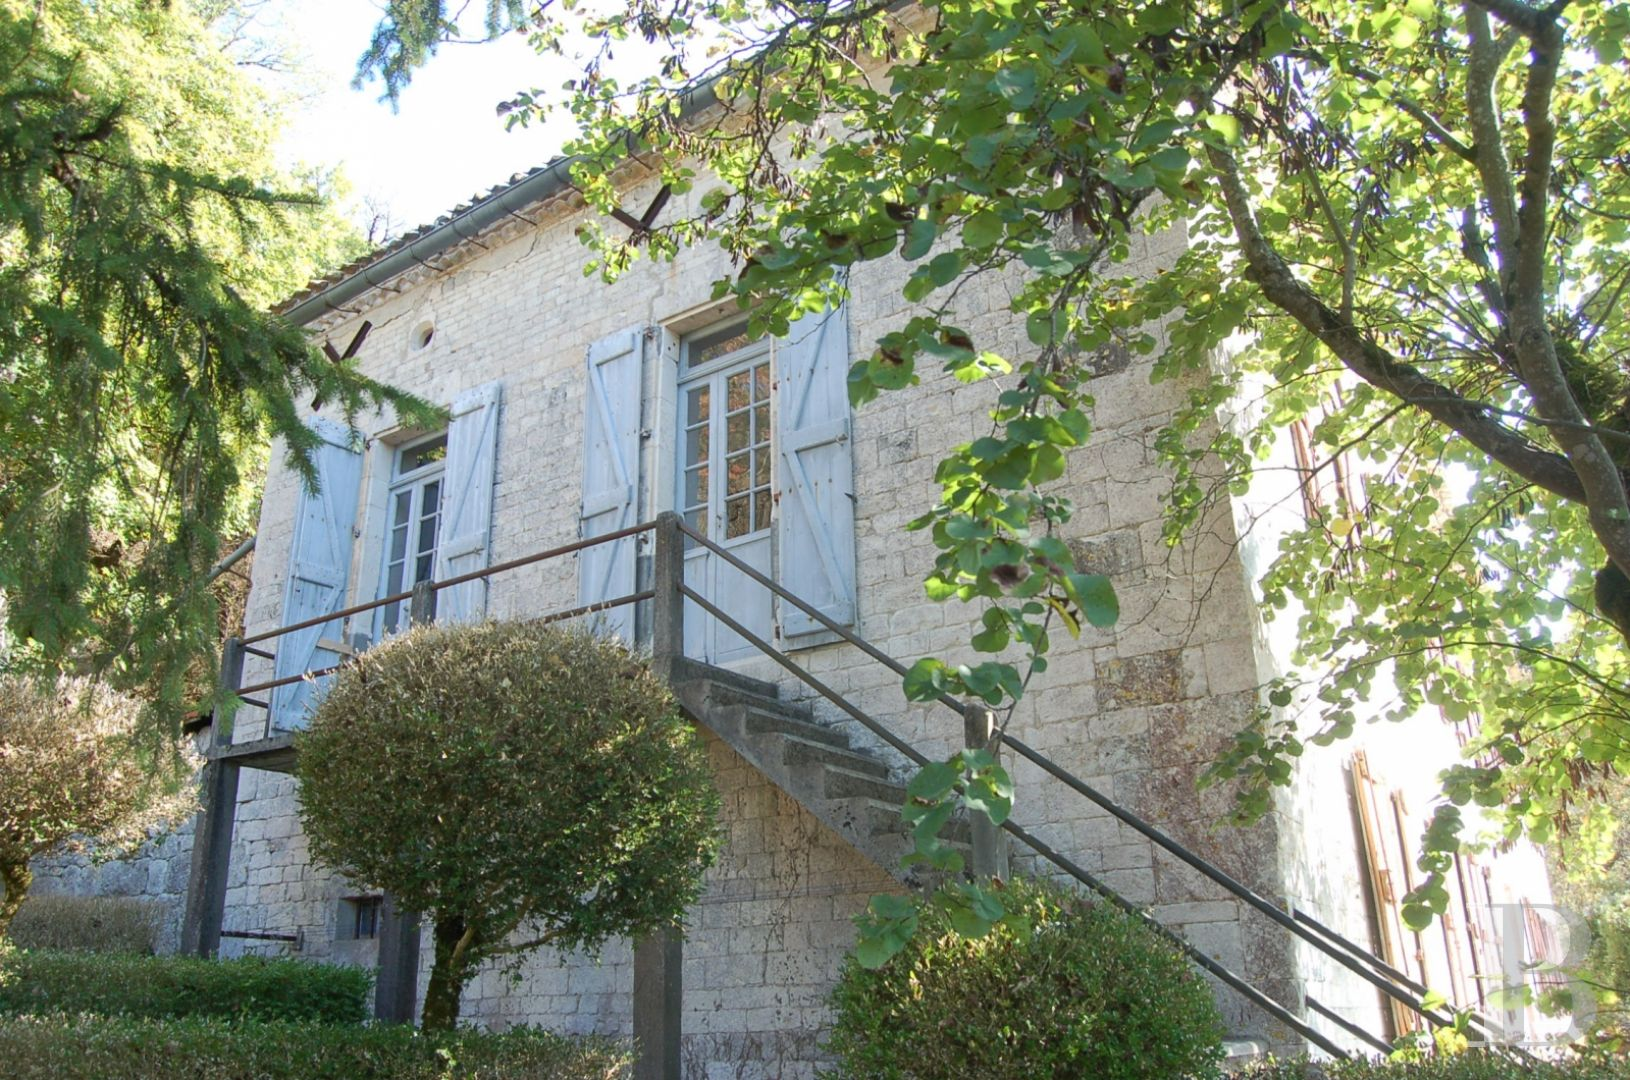 property for sale France midi pyrenees residences historic - 9 zoom